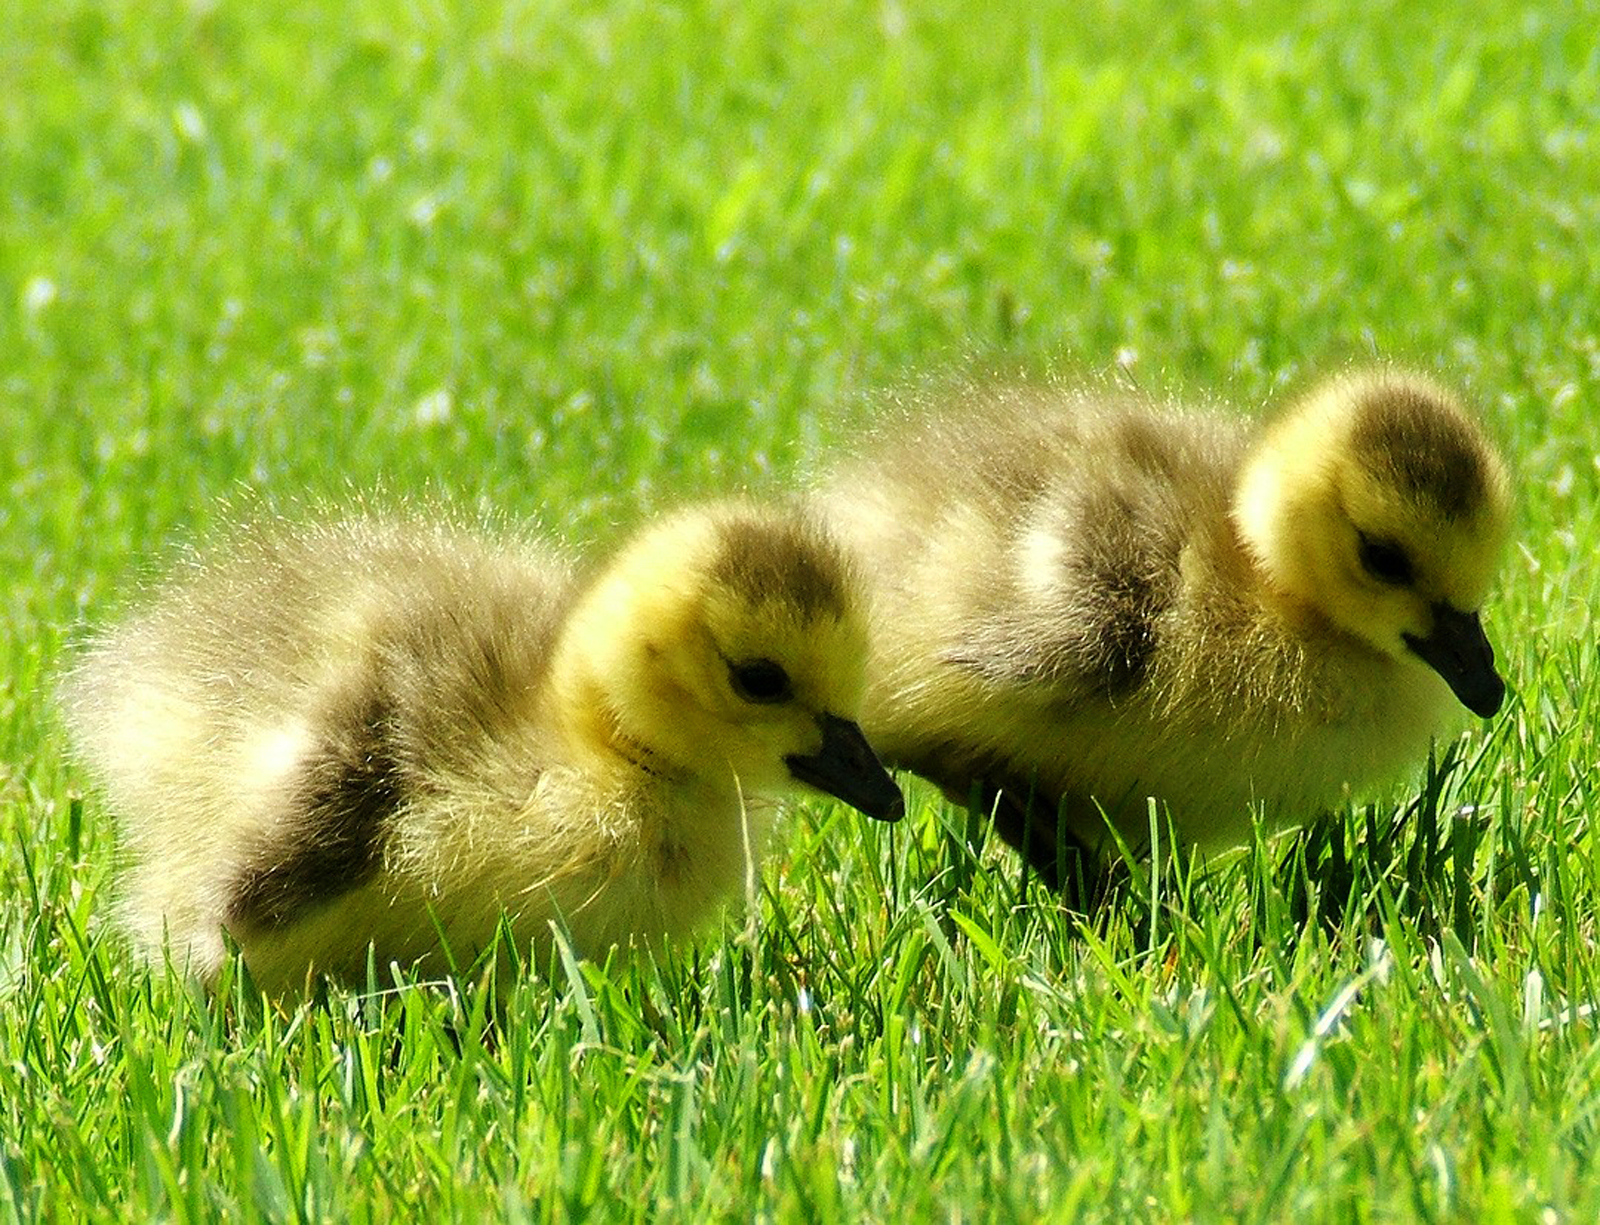 Cute little duck - photo#11